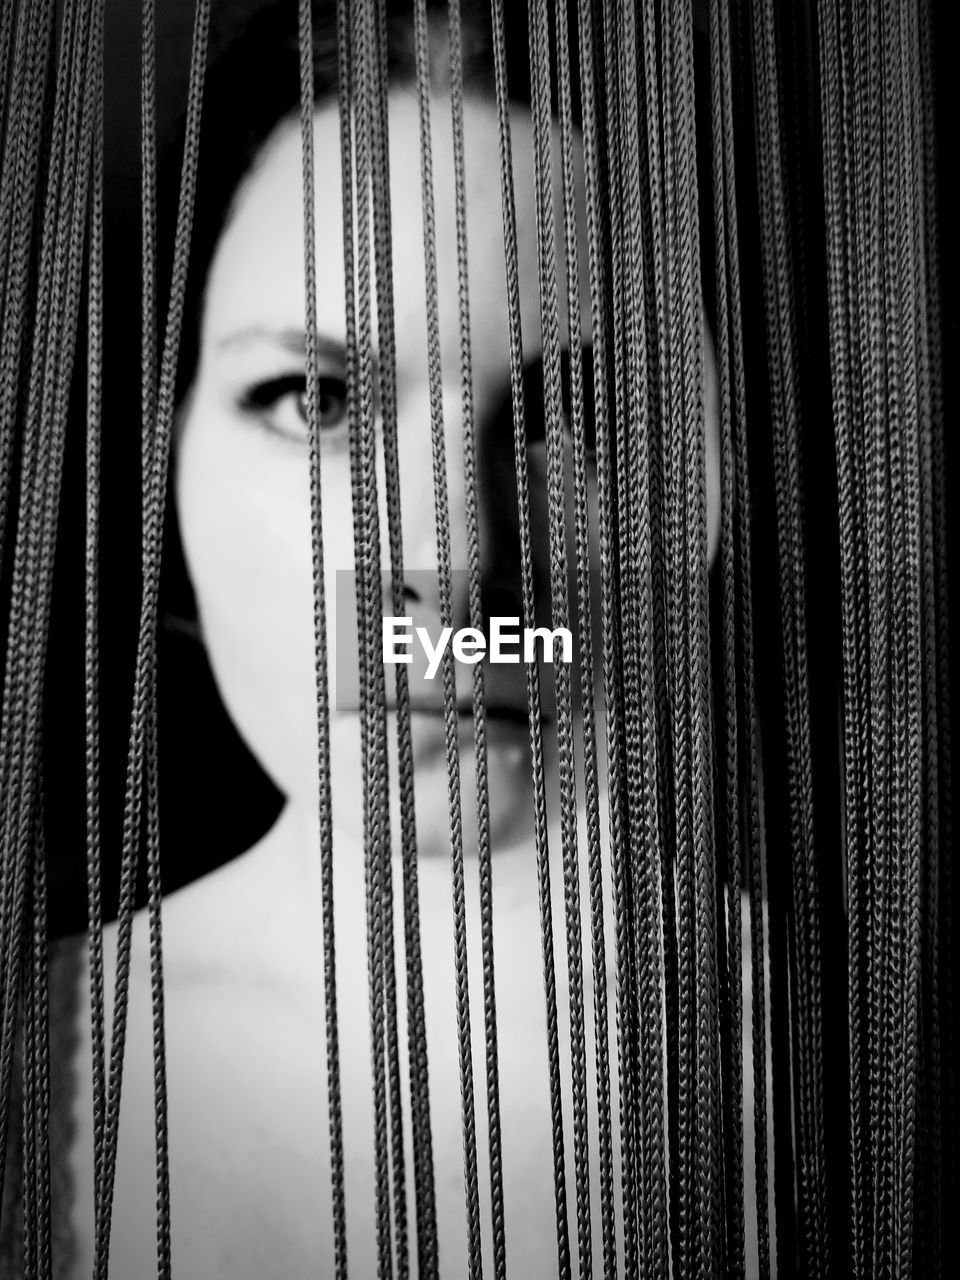 Close-Up Portrait Of Woman Standing Behind Strings Against Black Background